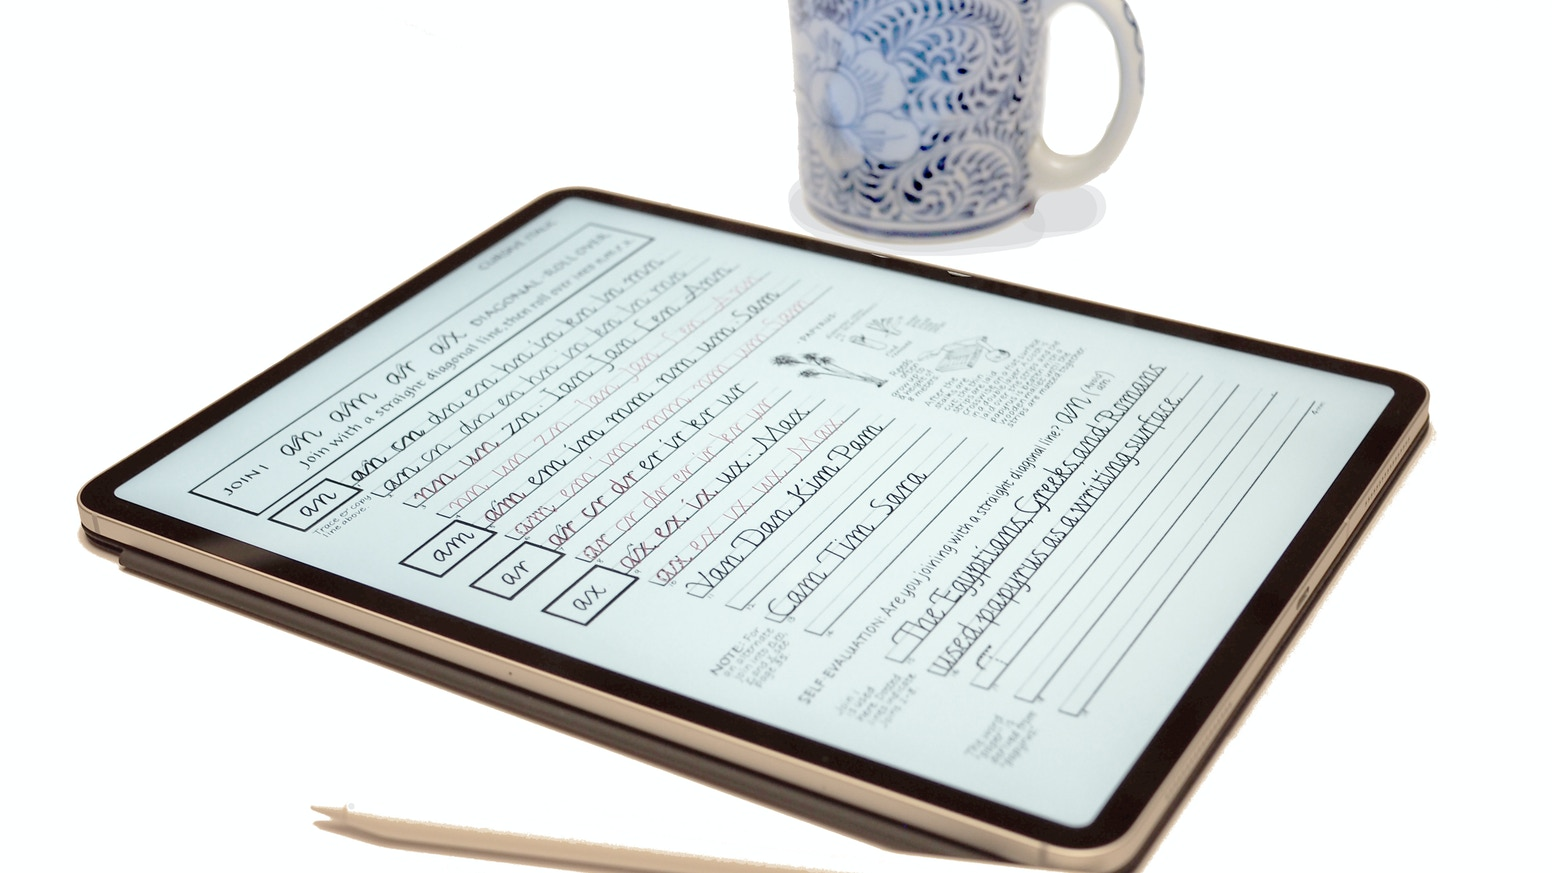 Make your tablet and stylus your tools to better handwriting.